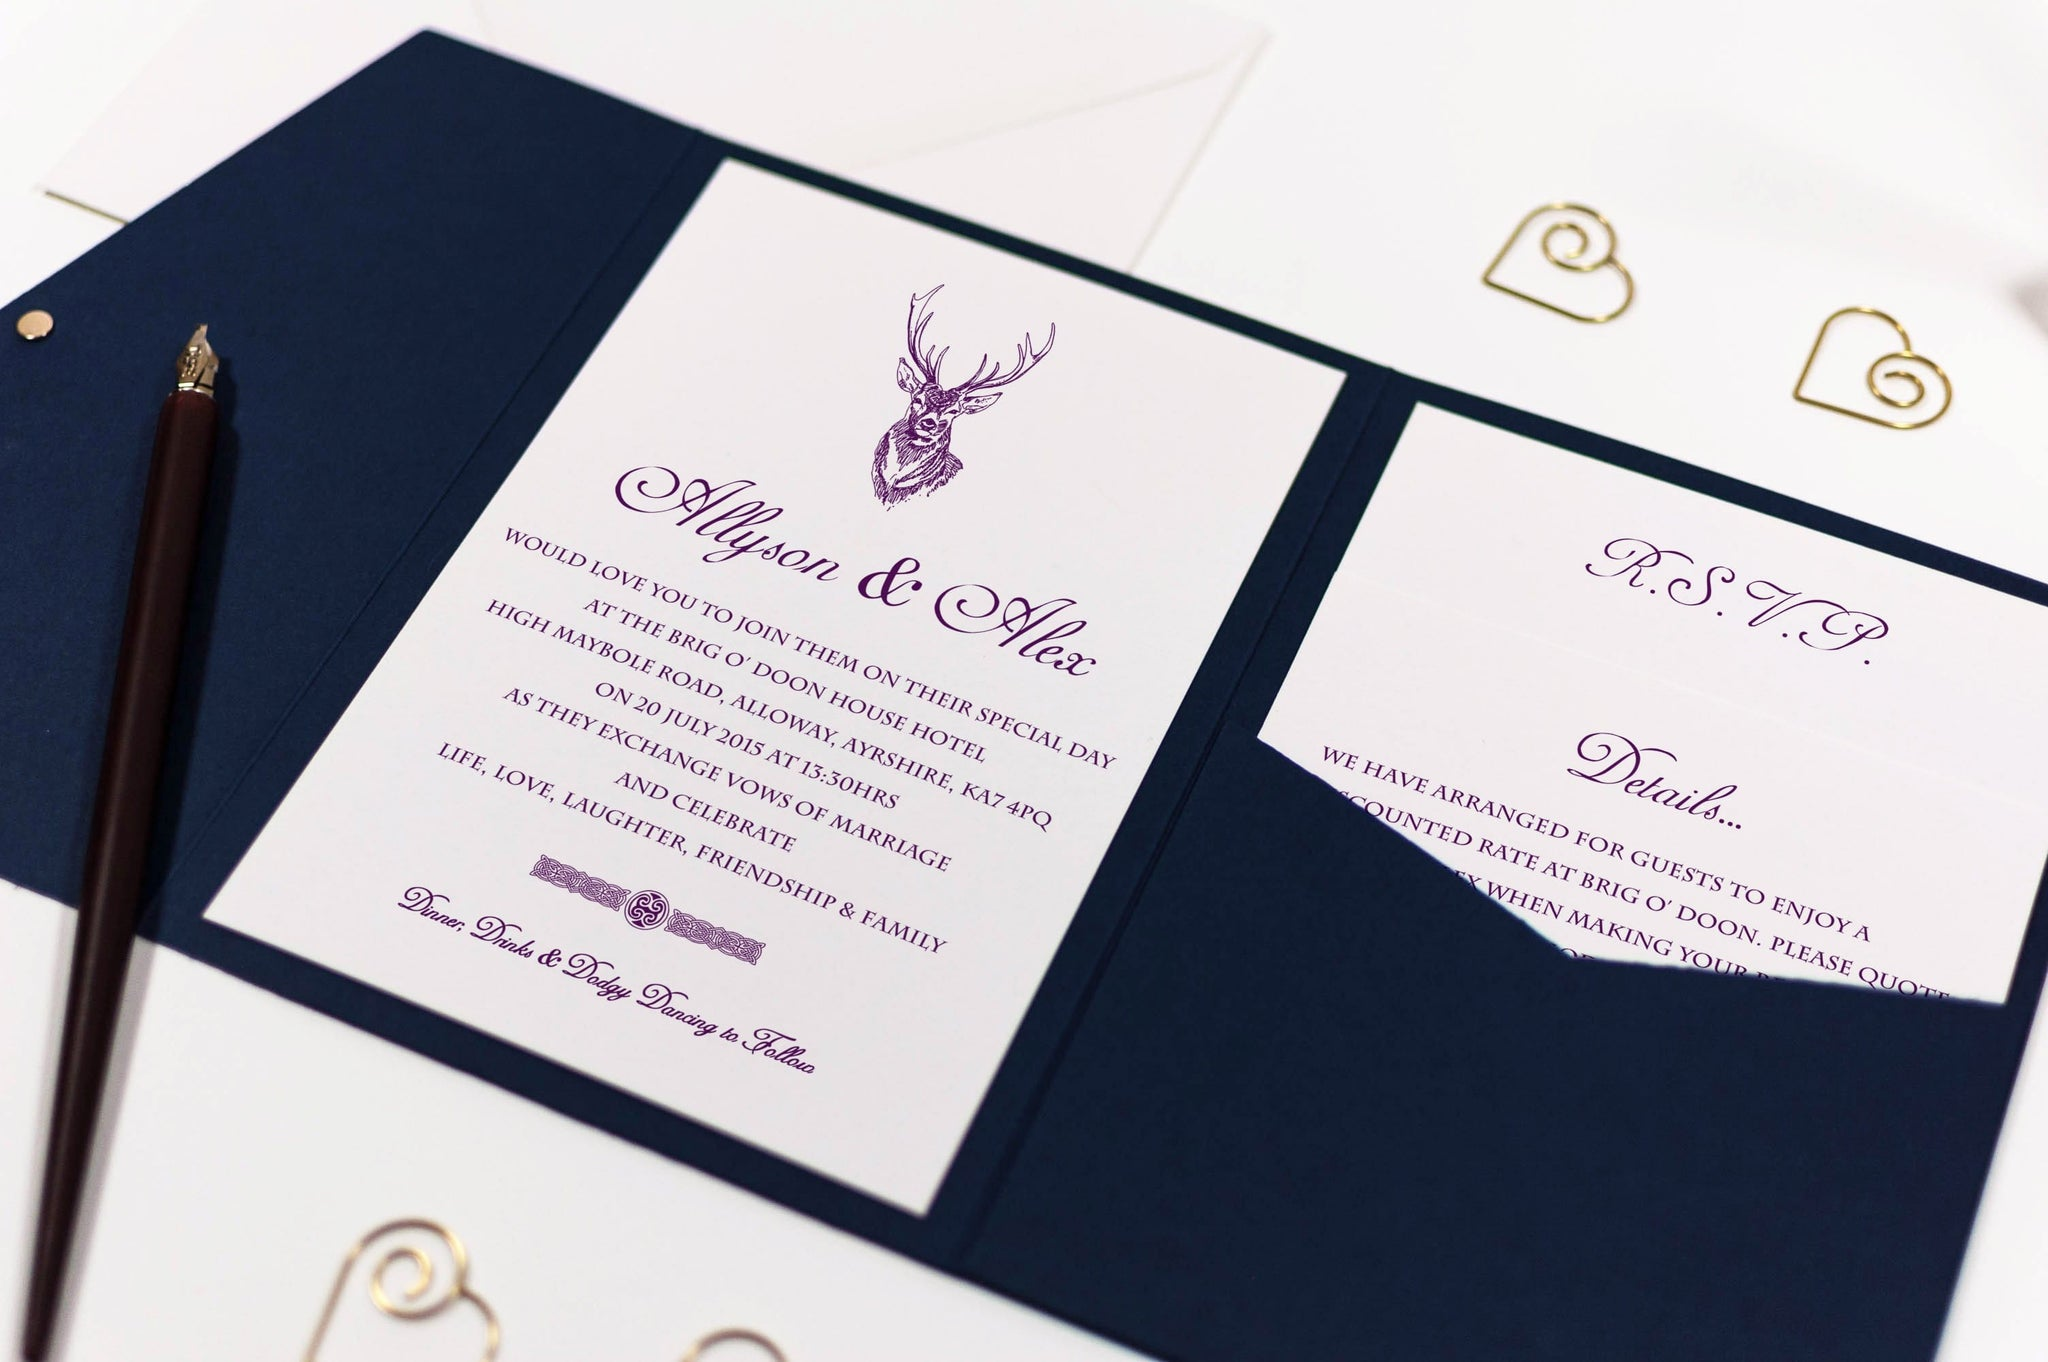 Stag Wedding Invitation in Navy Blue Pocketfold - Com Bossa, Luxury Wedding Stationery